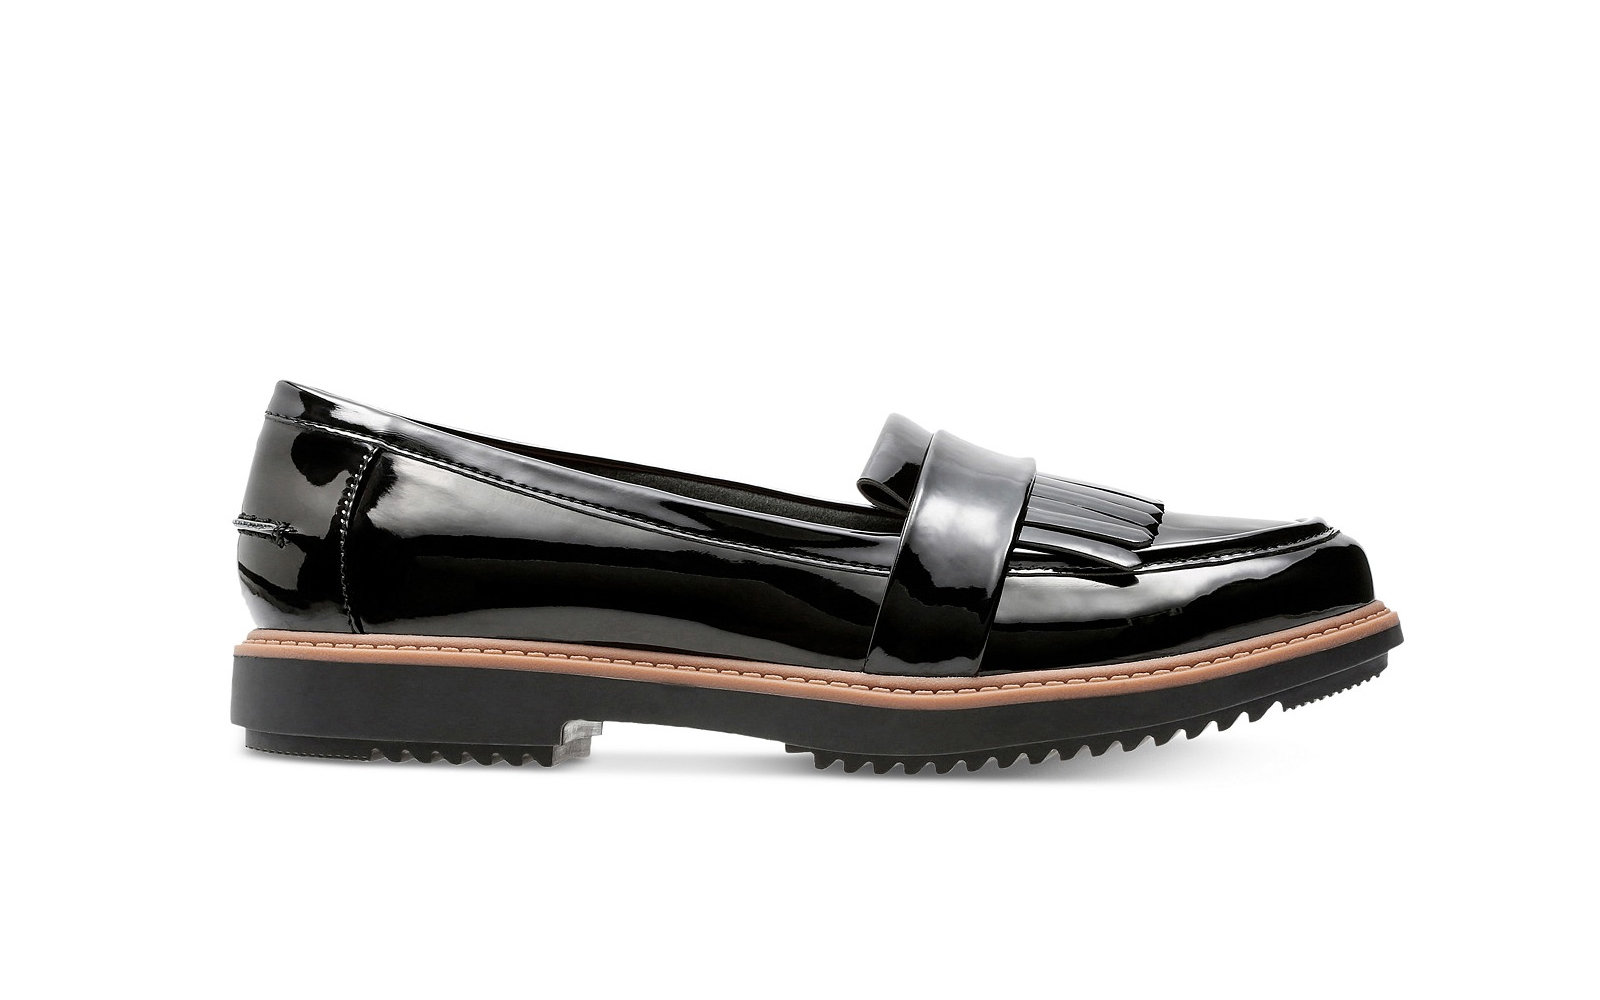 f903d1c7970 Clarks Collection Women s Raisie Theresa Loafers in Black Patent. Comfy  Walking Shoes ...